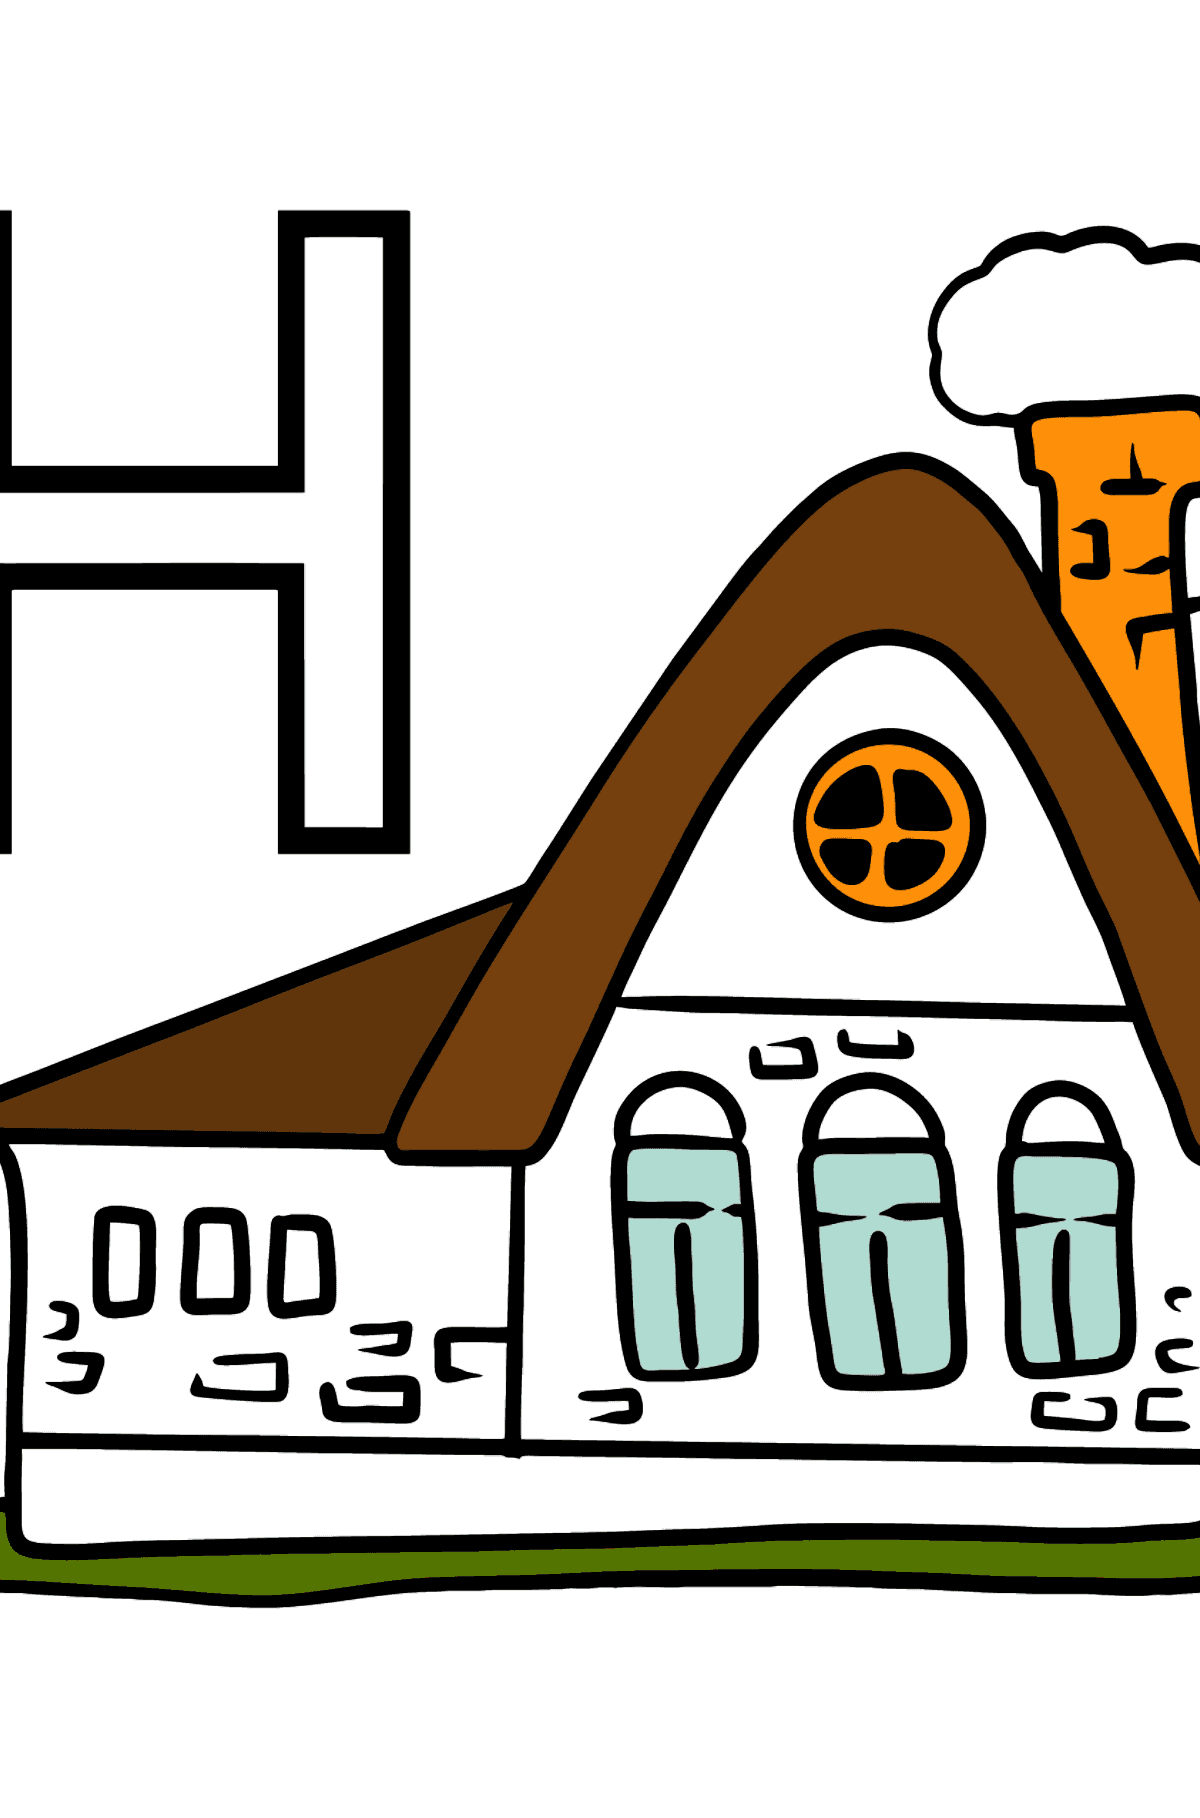 German Letter H coloring pages - HAUS - Coloring Pages for Kids